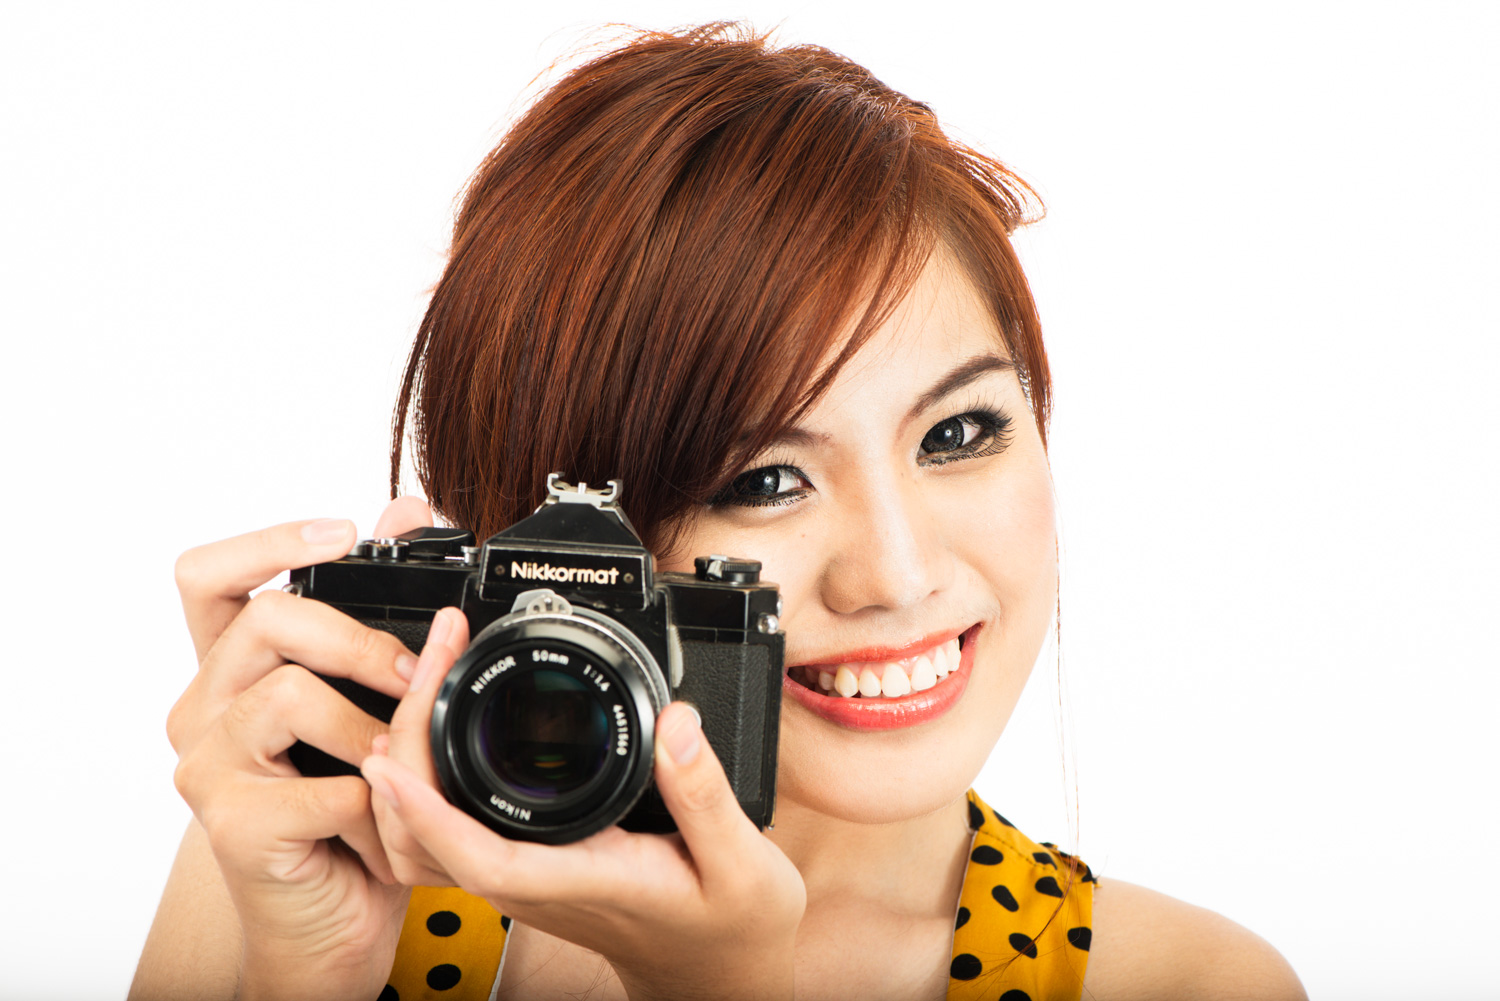 Hexbyte - Glen Cove - News Royalty Free Editorial Stock Photography - What is it? Woman with a SLR Film Camera